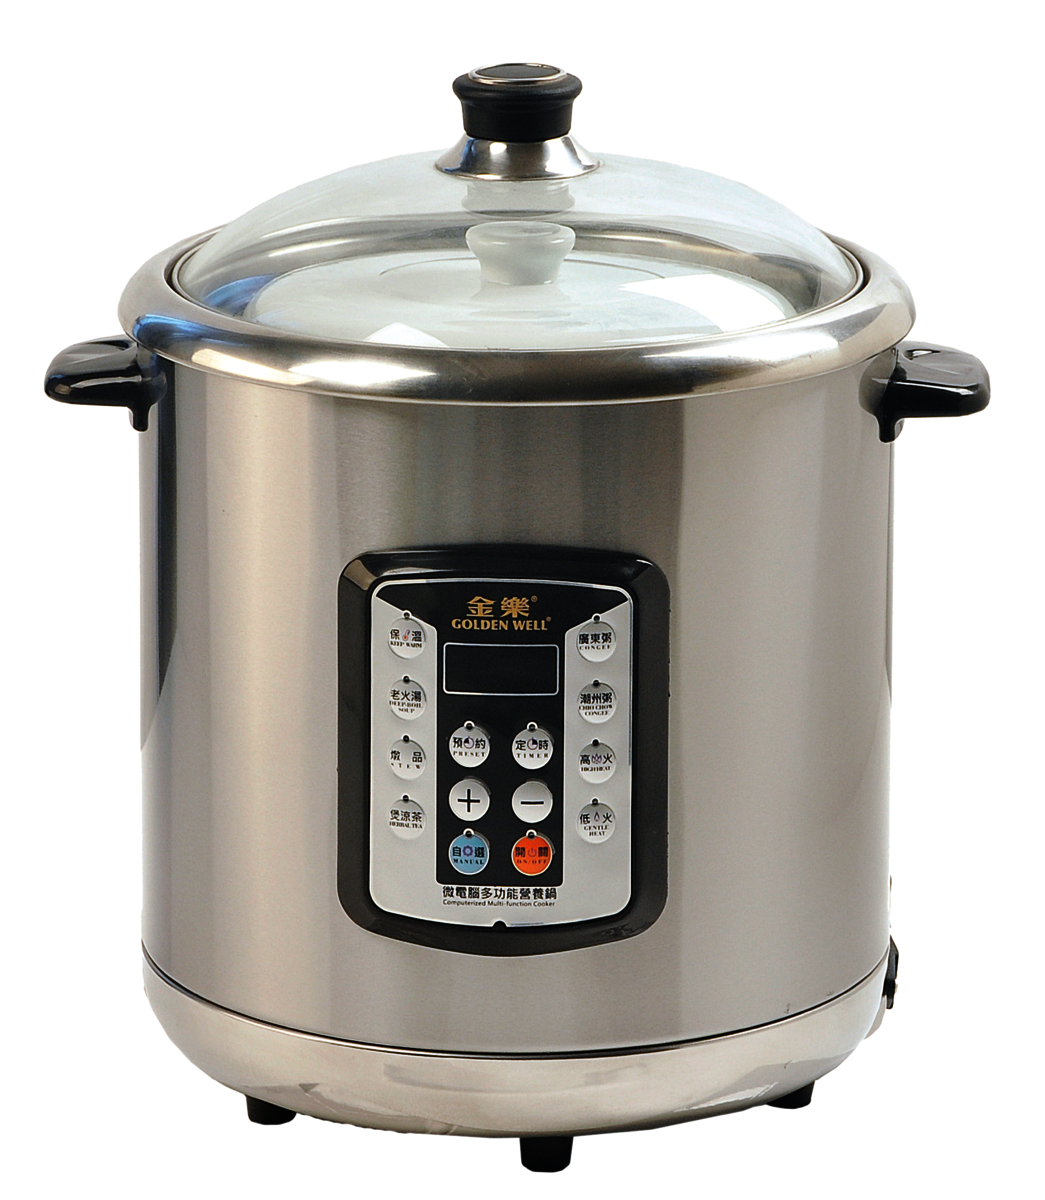 Intelligence Multi-Function Cooker GW-40A Intelligence Multi-Function Cooker GW-40A